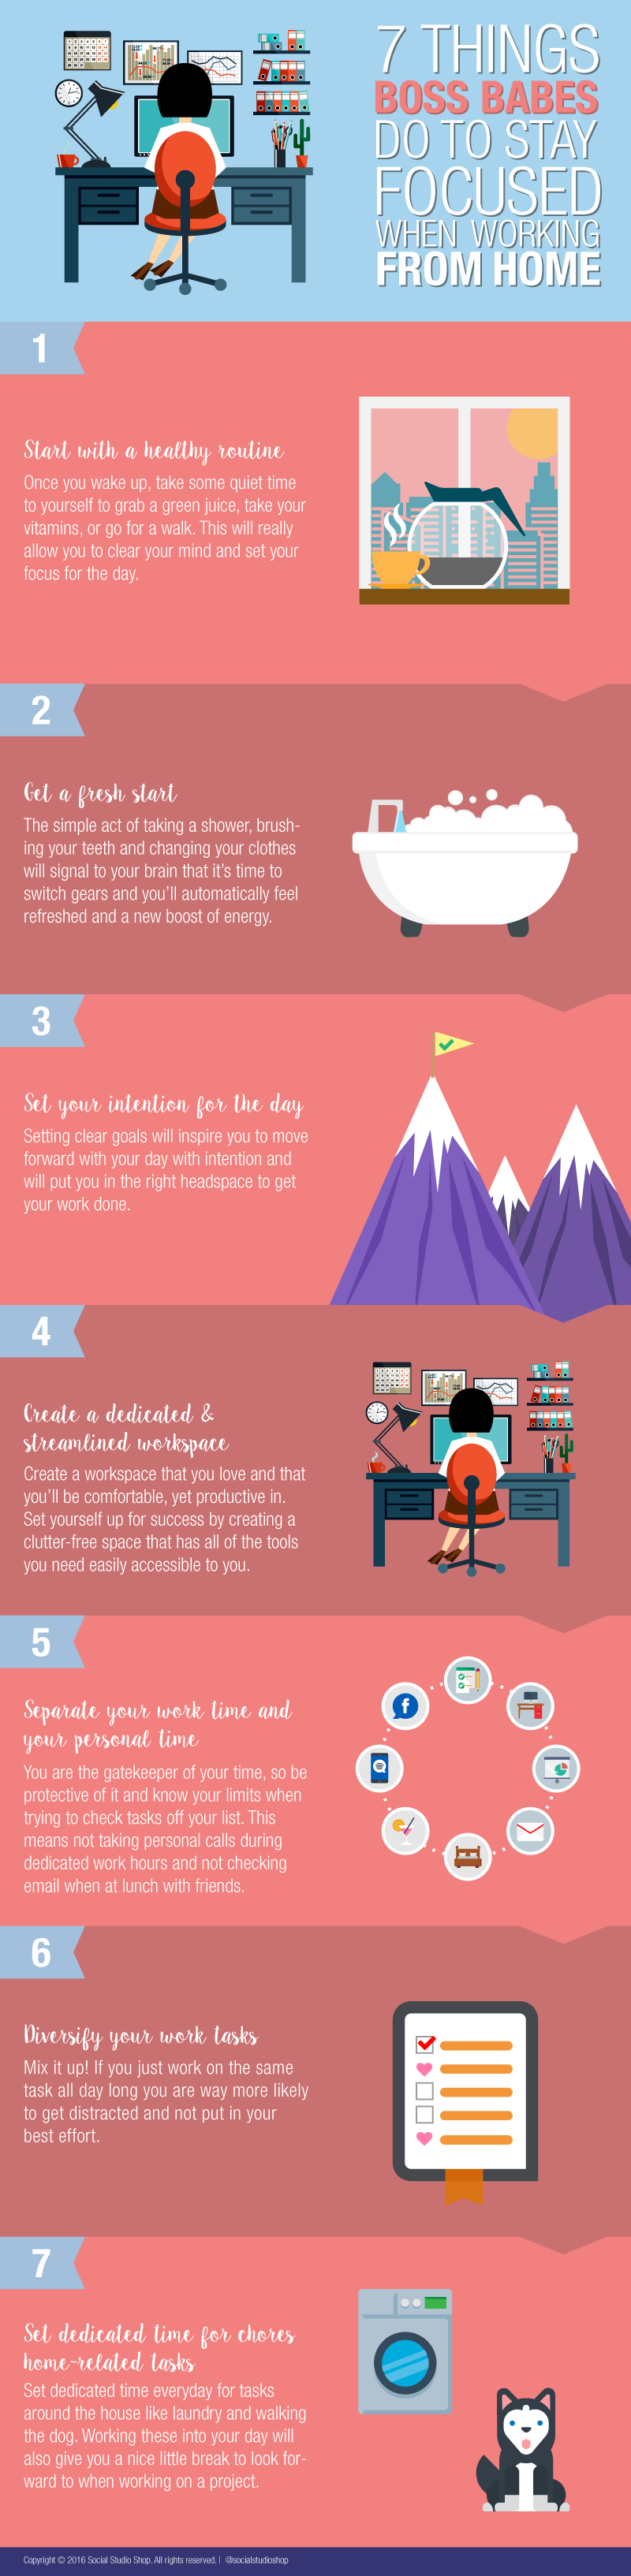 what to do if you work from home infographic